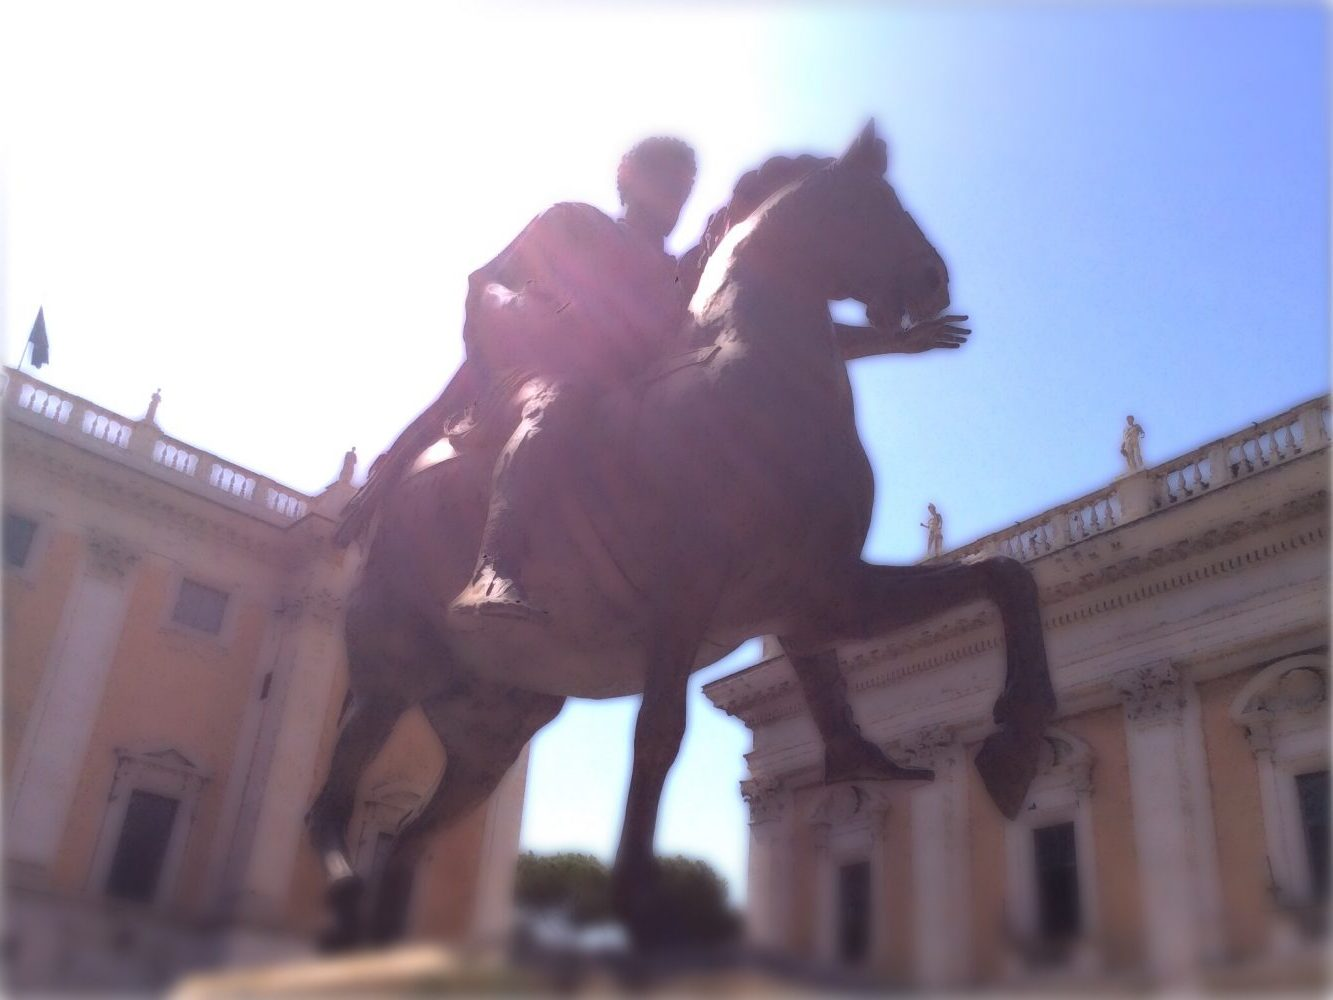 Writing prompt: Horse & rider racing. Dazzling sunlight. Classical architecture.